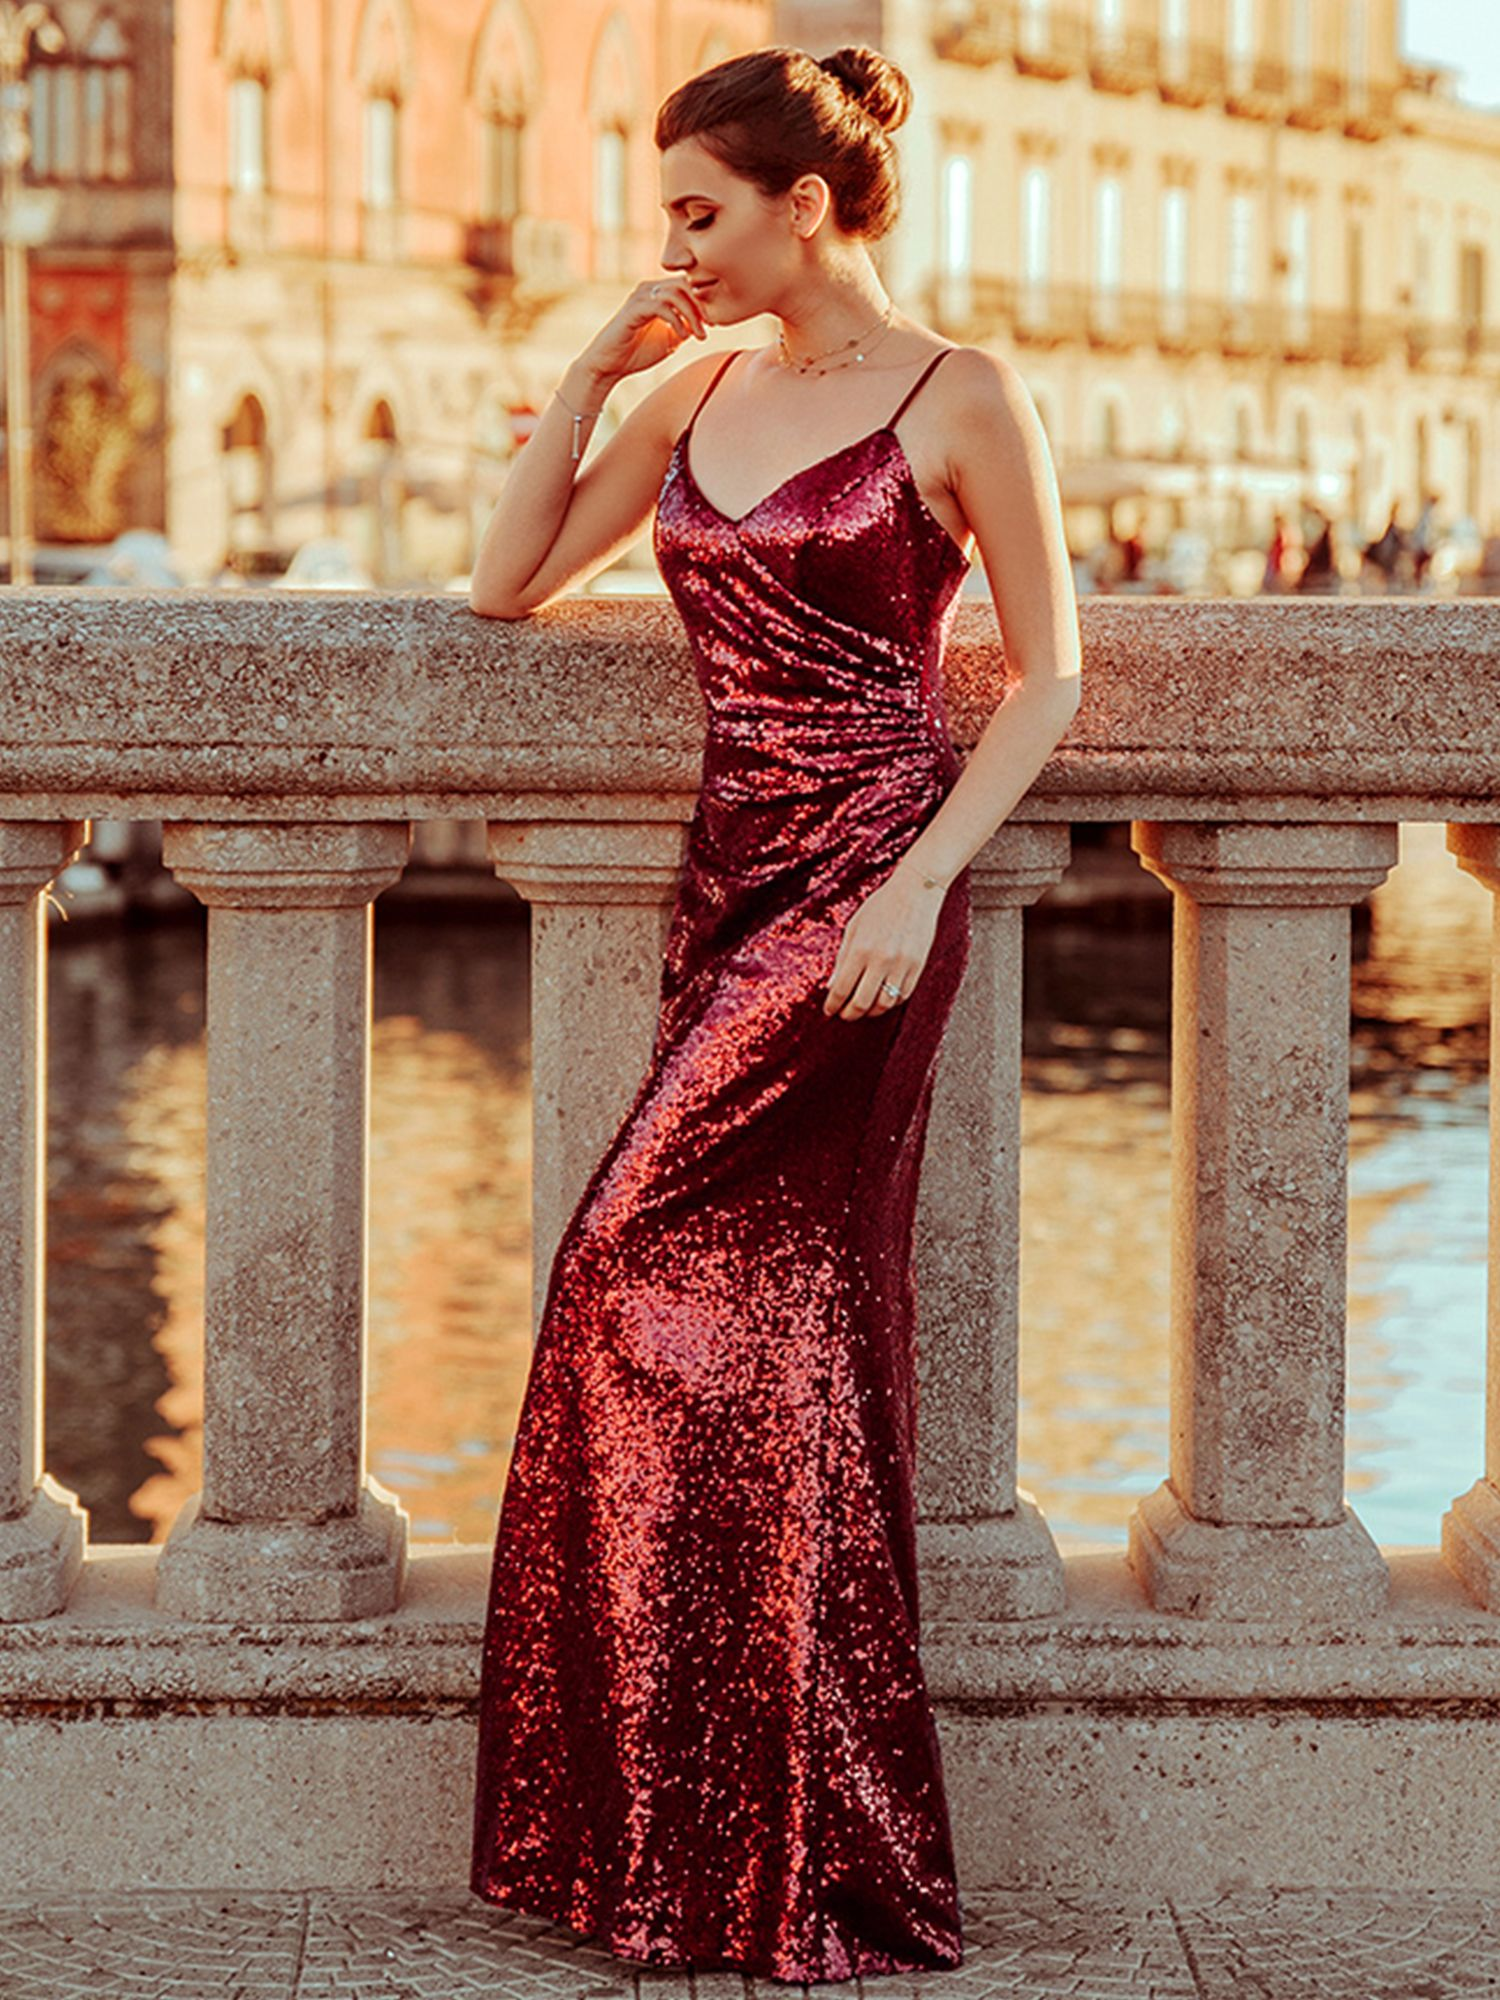 Ever Pretty Women S V Neck Sequins Long Burgundy Formal Evening Prom Cocktail Party Dresses For Wome Party Wear Dresses Cocktail Dress Party Sequin Party Dress [ 2000 x 1500 Pixel ]